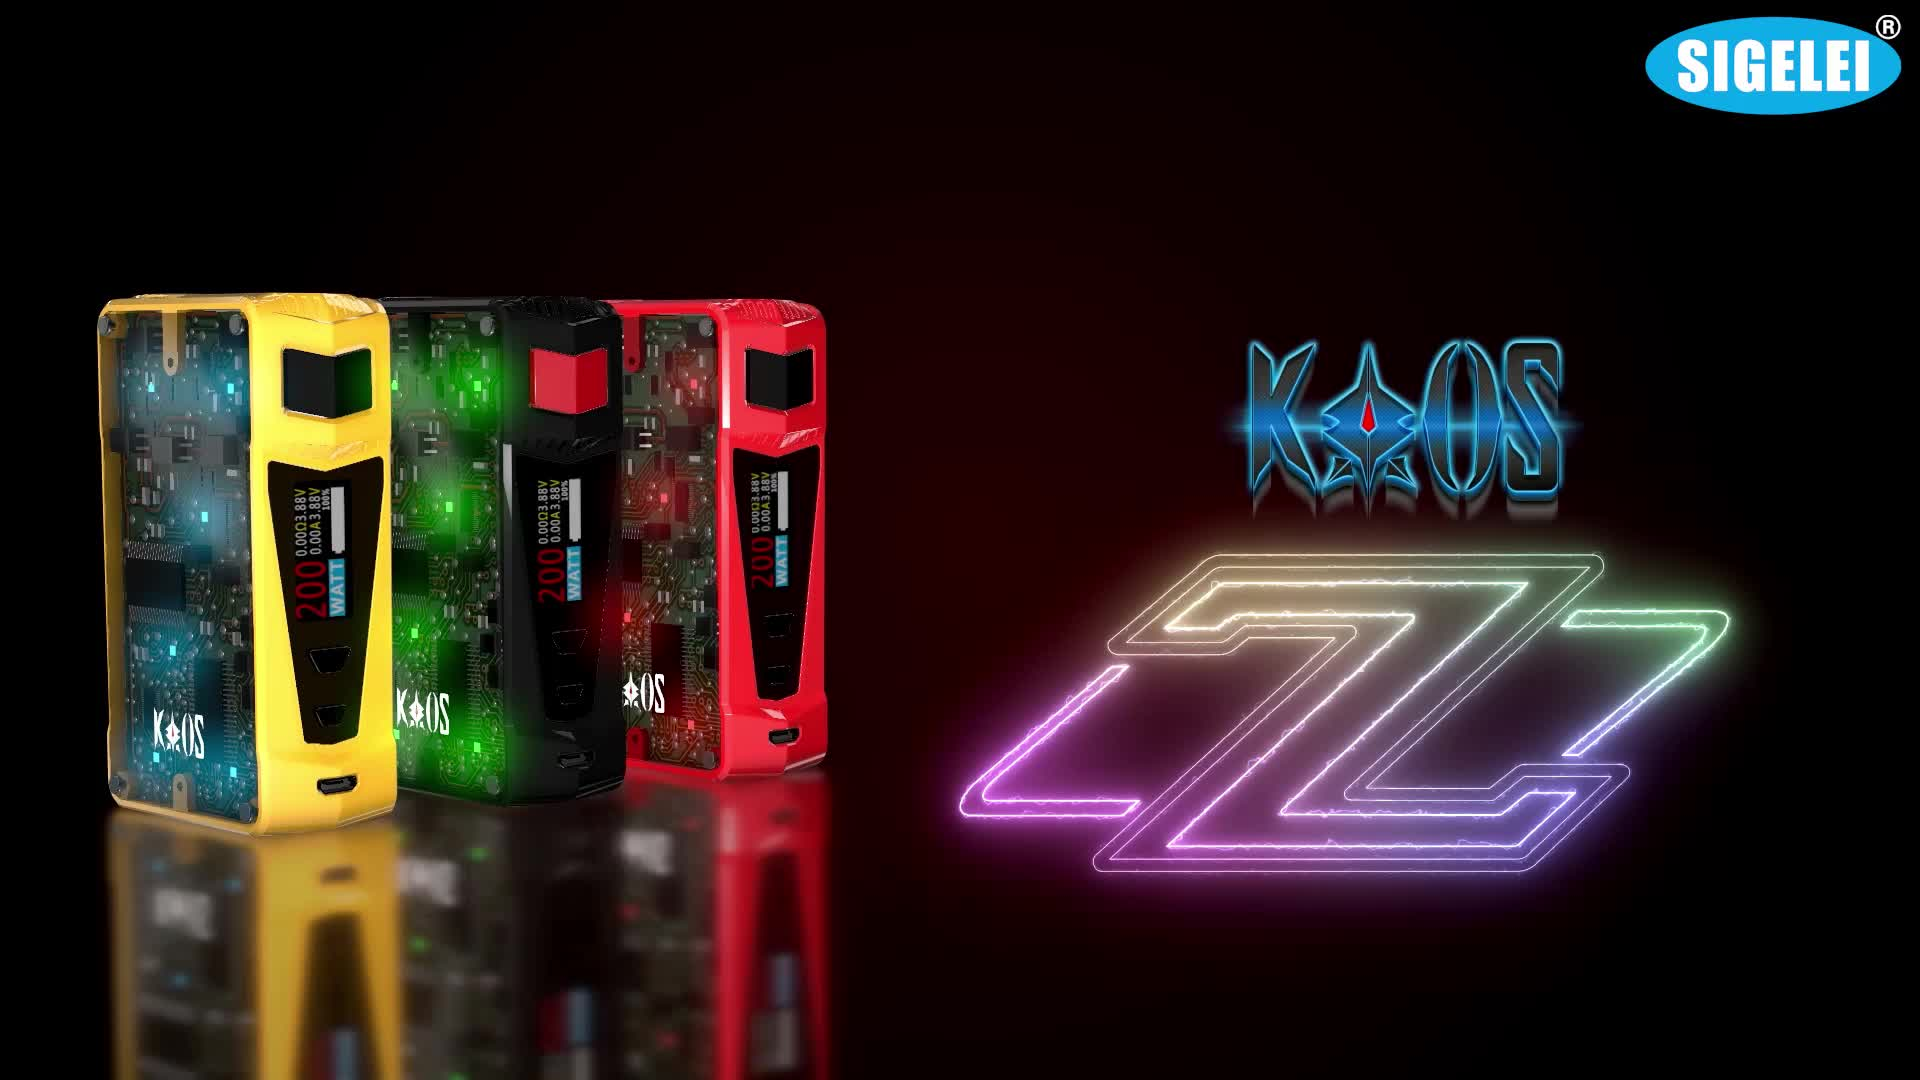 Authentic Sigelei Kaos Z Ucige With sigelei health care products vaping device from China biggest ecig Sigelei Kaos Z